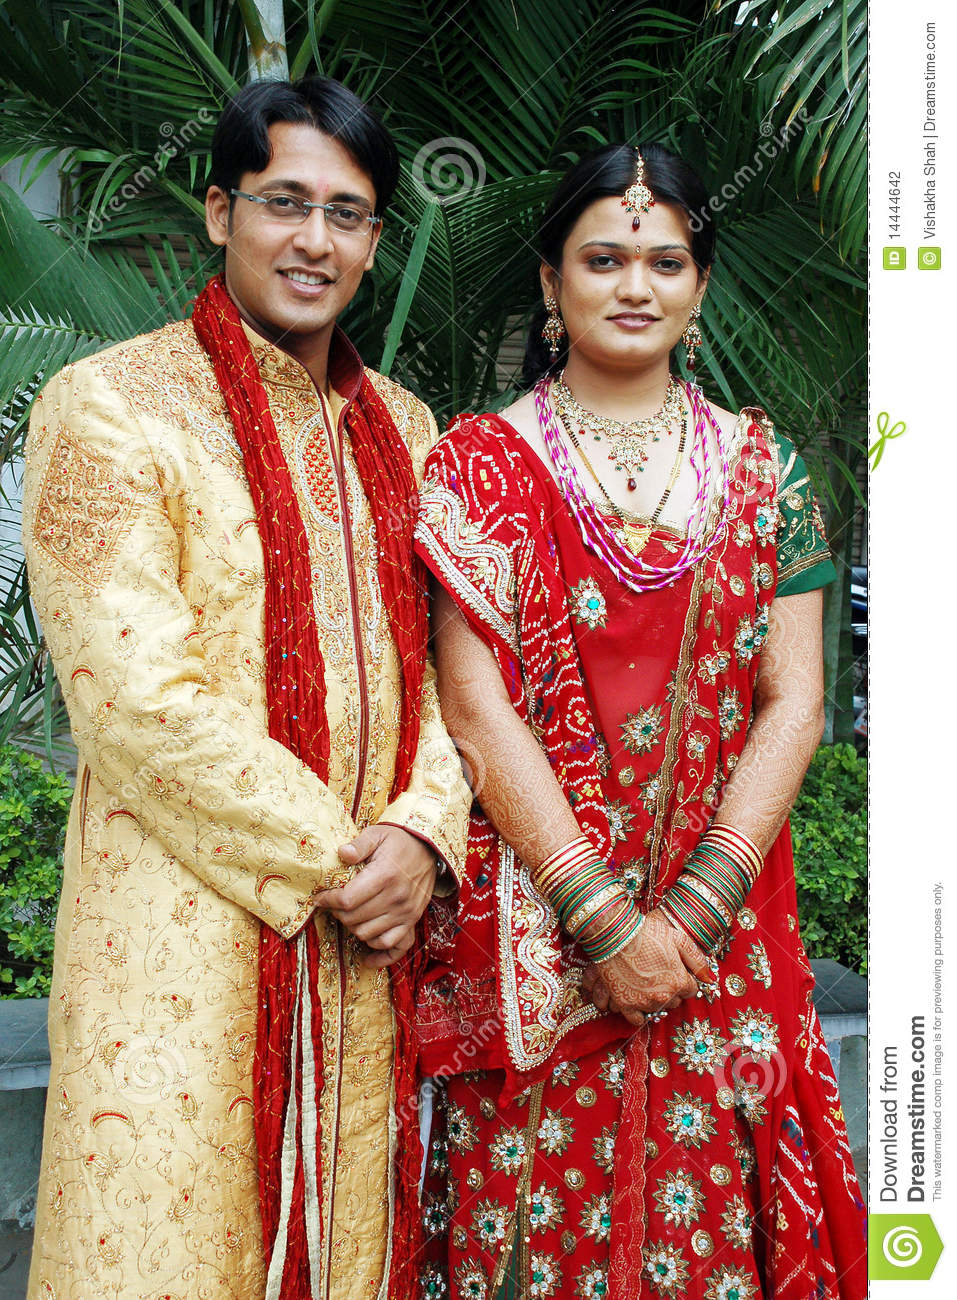 ab75cb3716 Handsome Marriage Indian Couple Stock Images - Download 148 Royalty Free  Photos